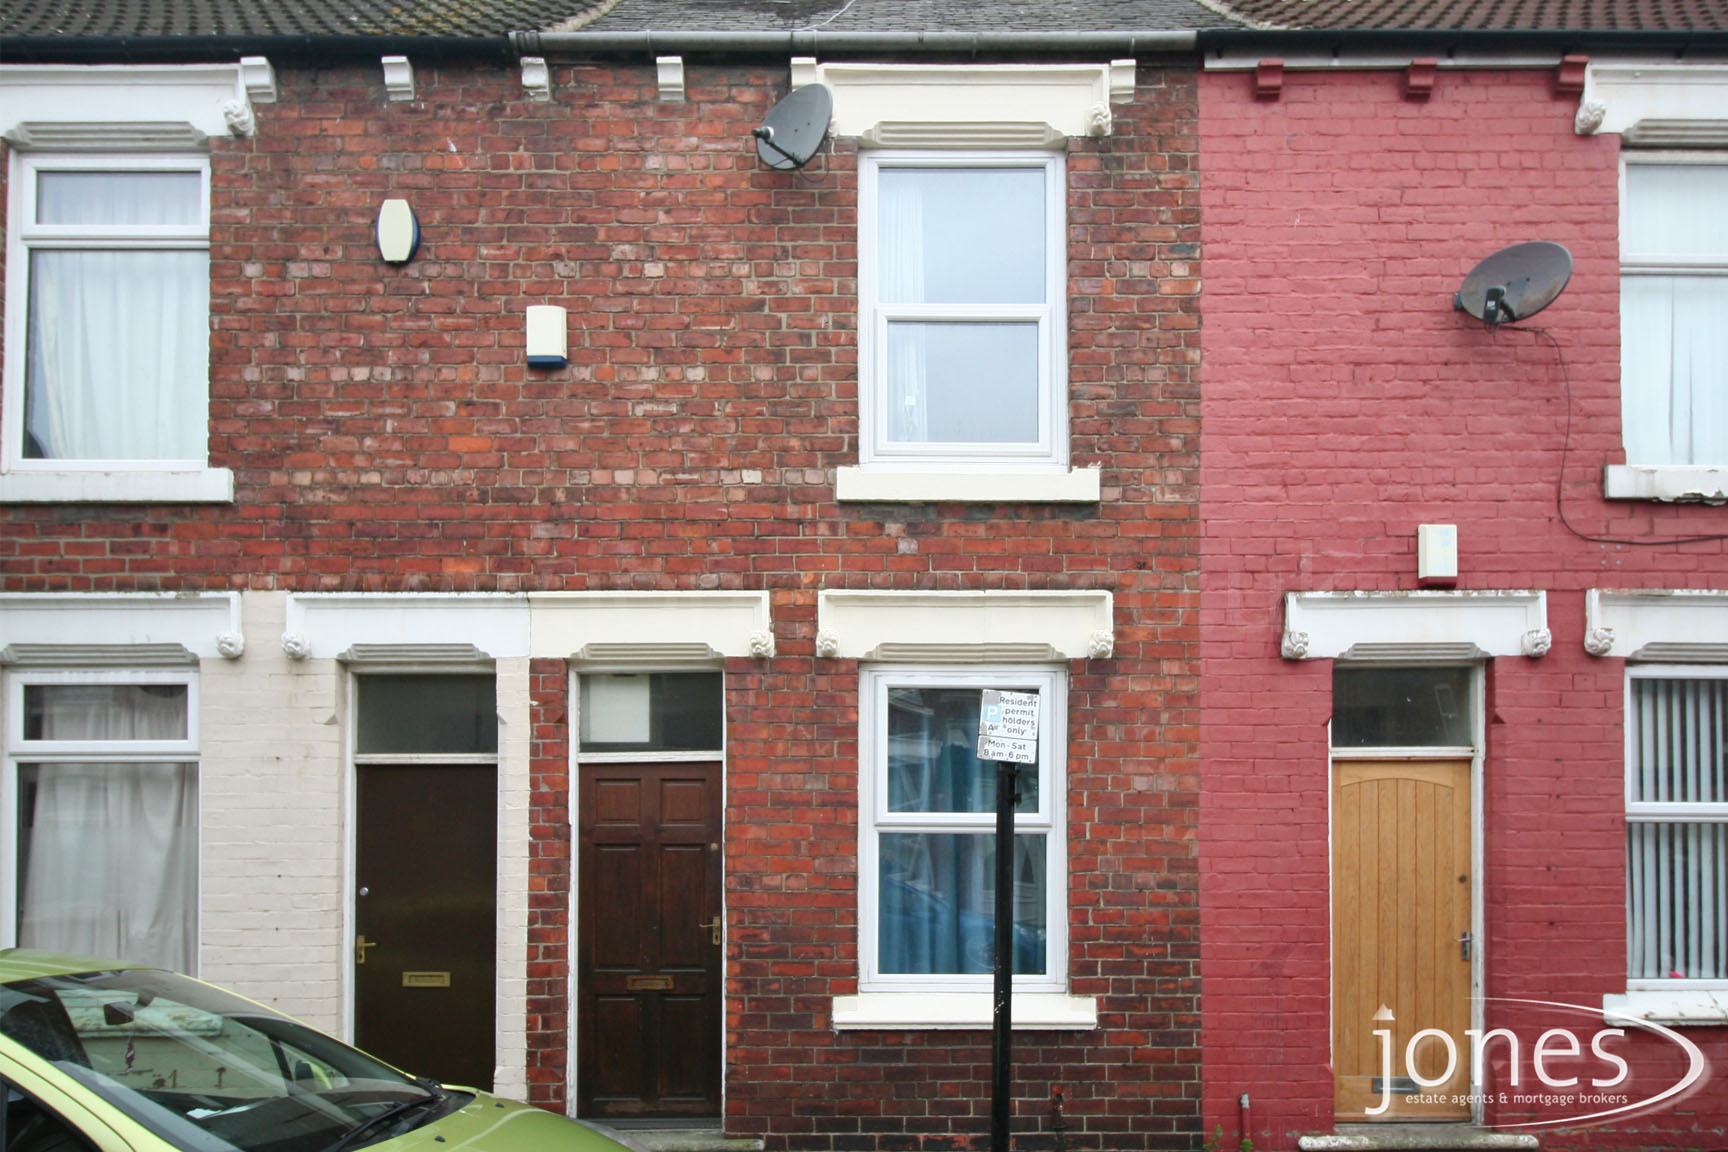 Home for Sale Let - Photo 01 Percy Street   Middlesbrough TS1 4DD